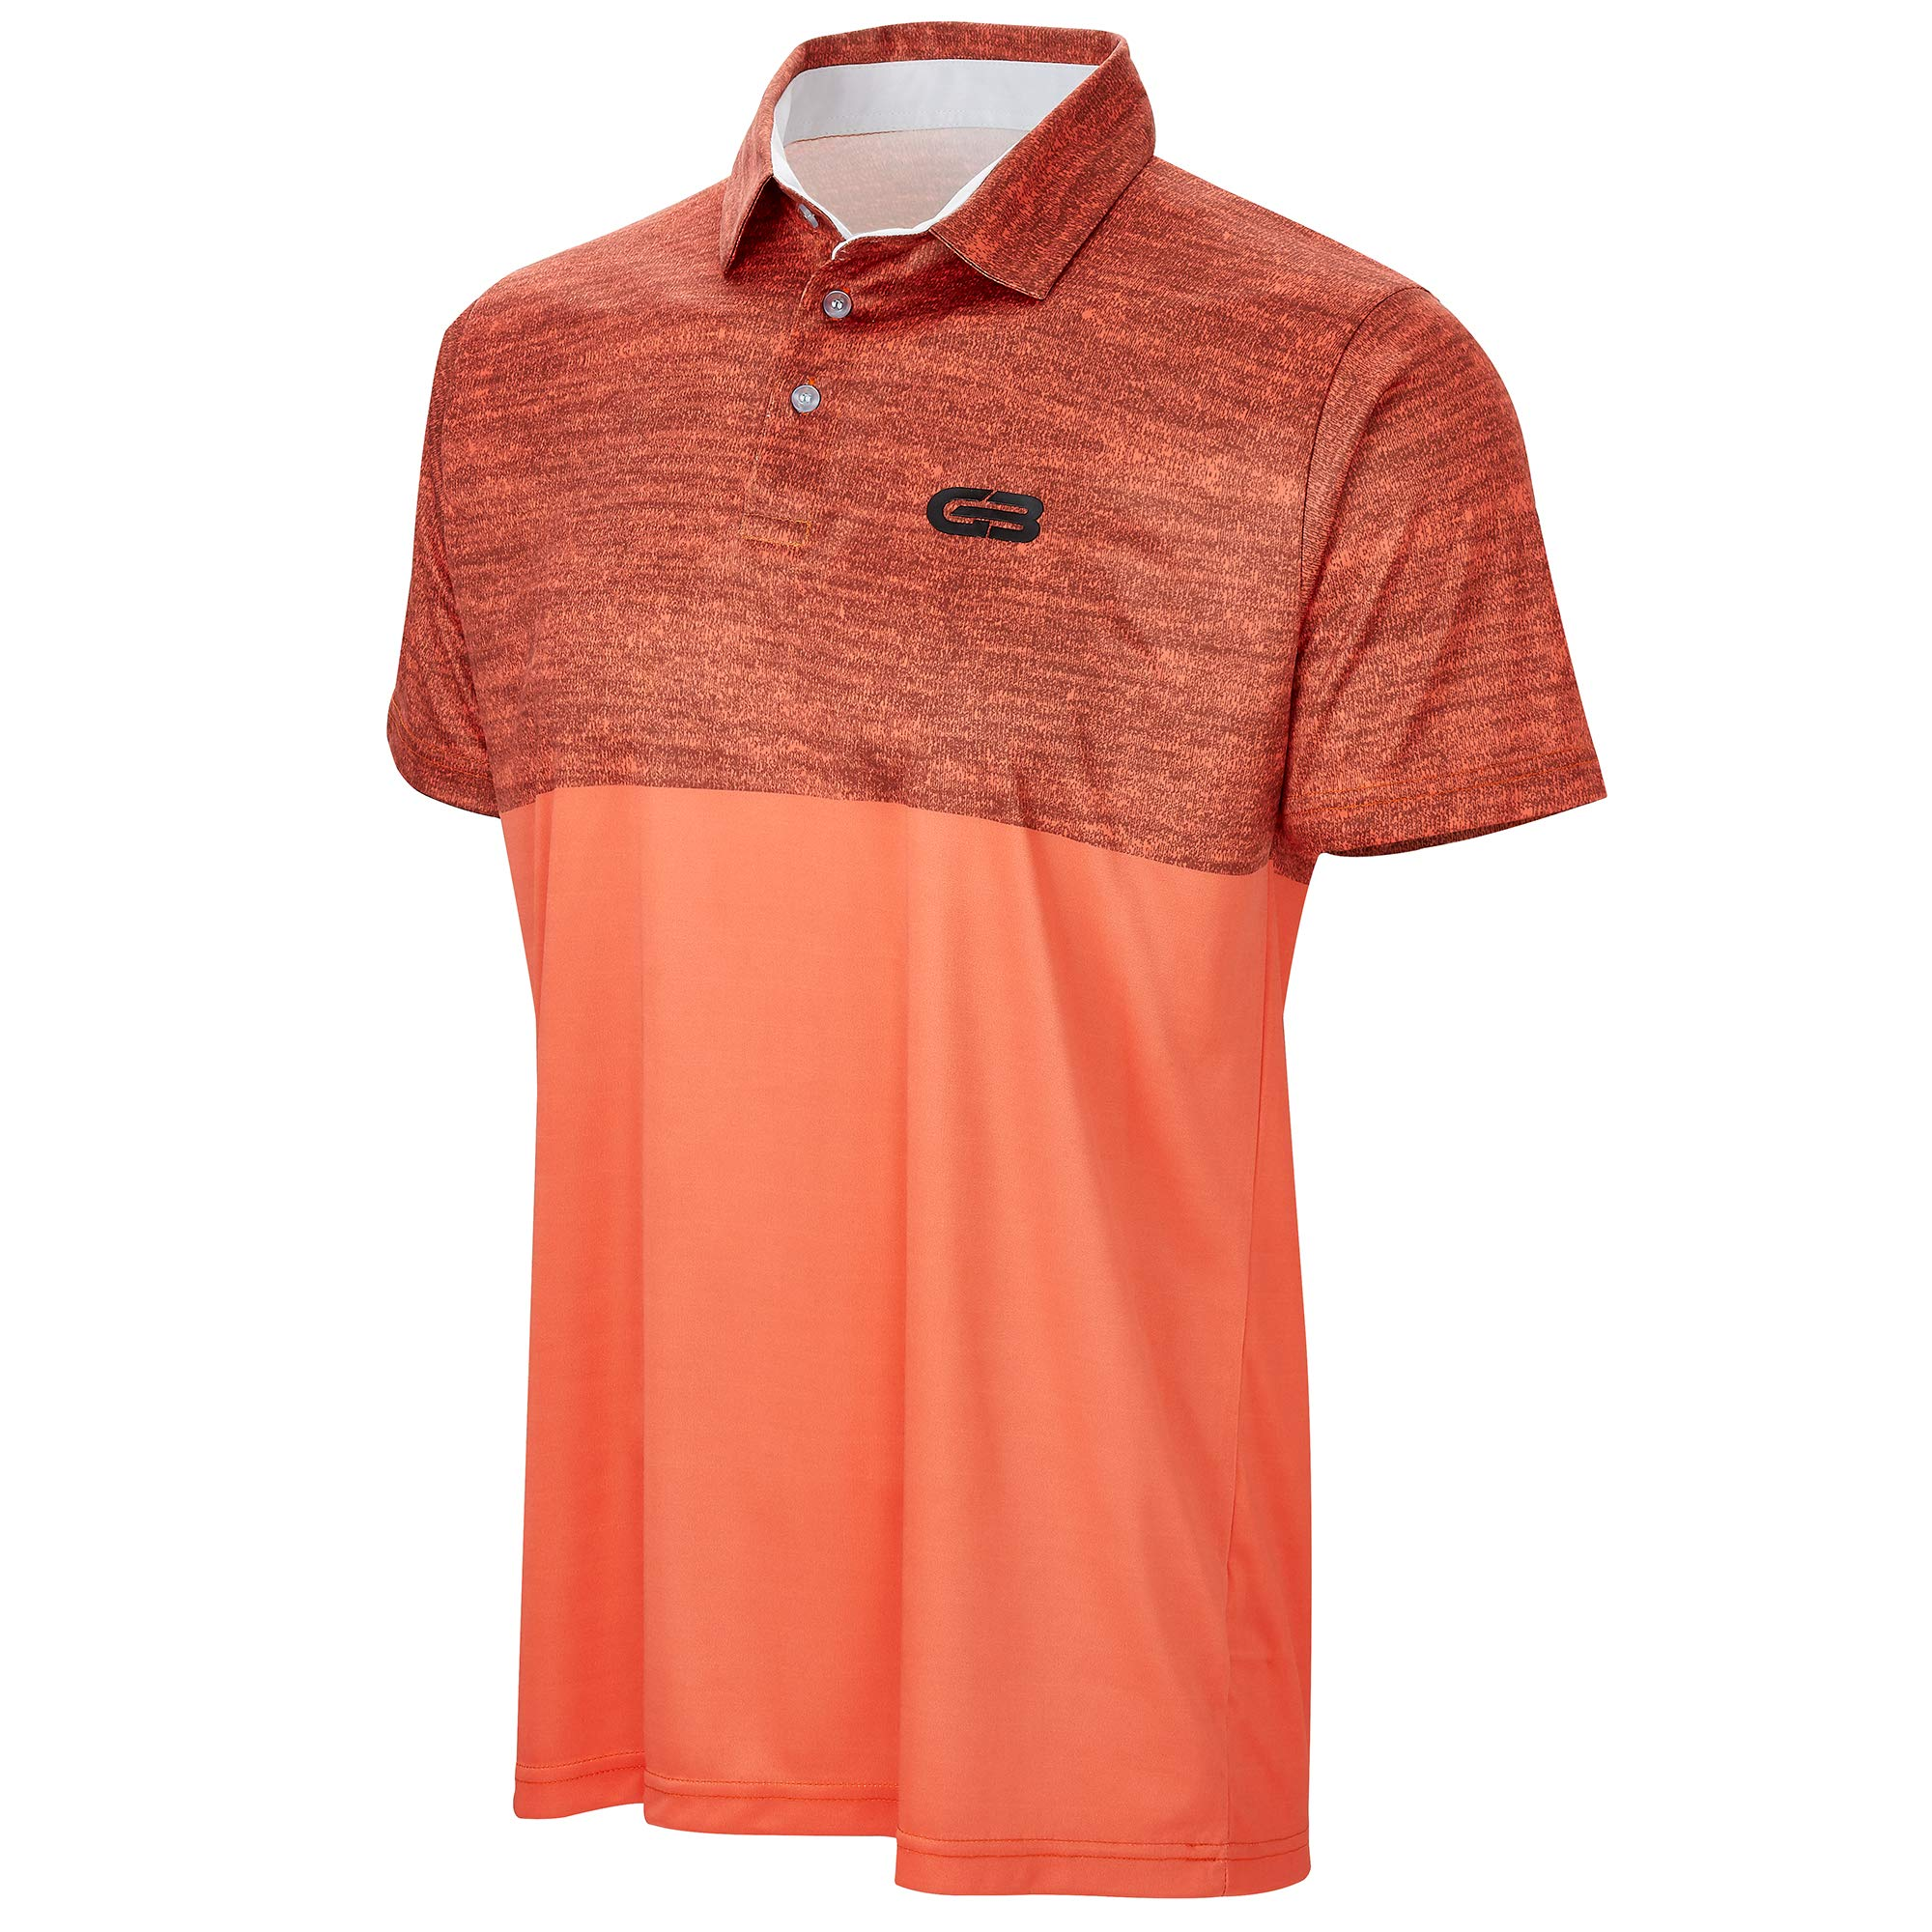 885842db445 Best Rated in Men s Golf Shirts   Helpful Customer Reviews - Amazon.com